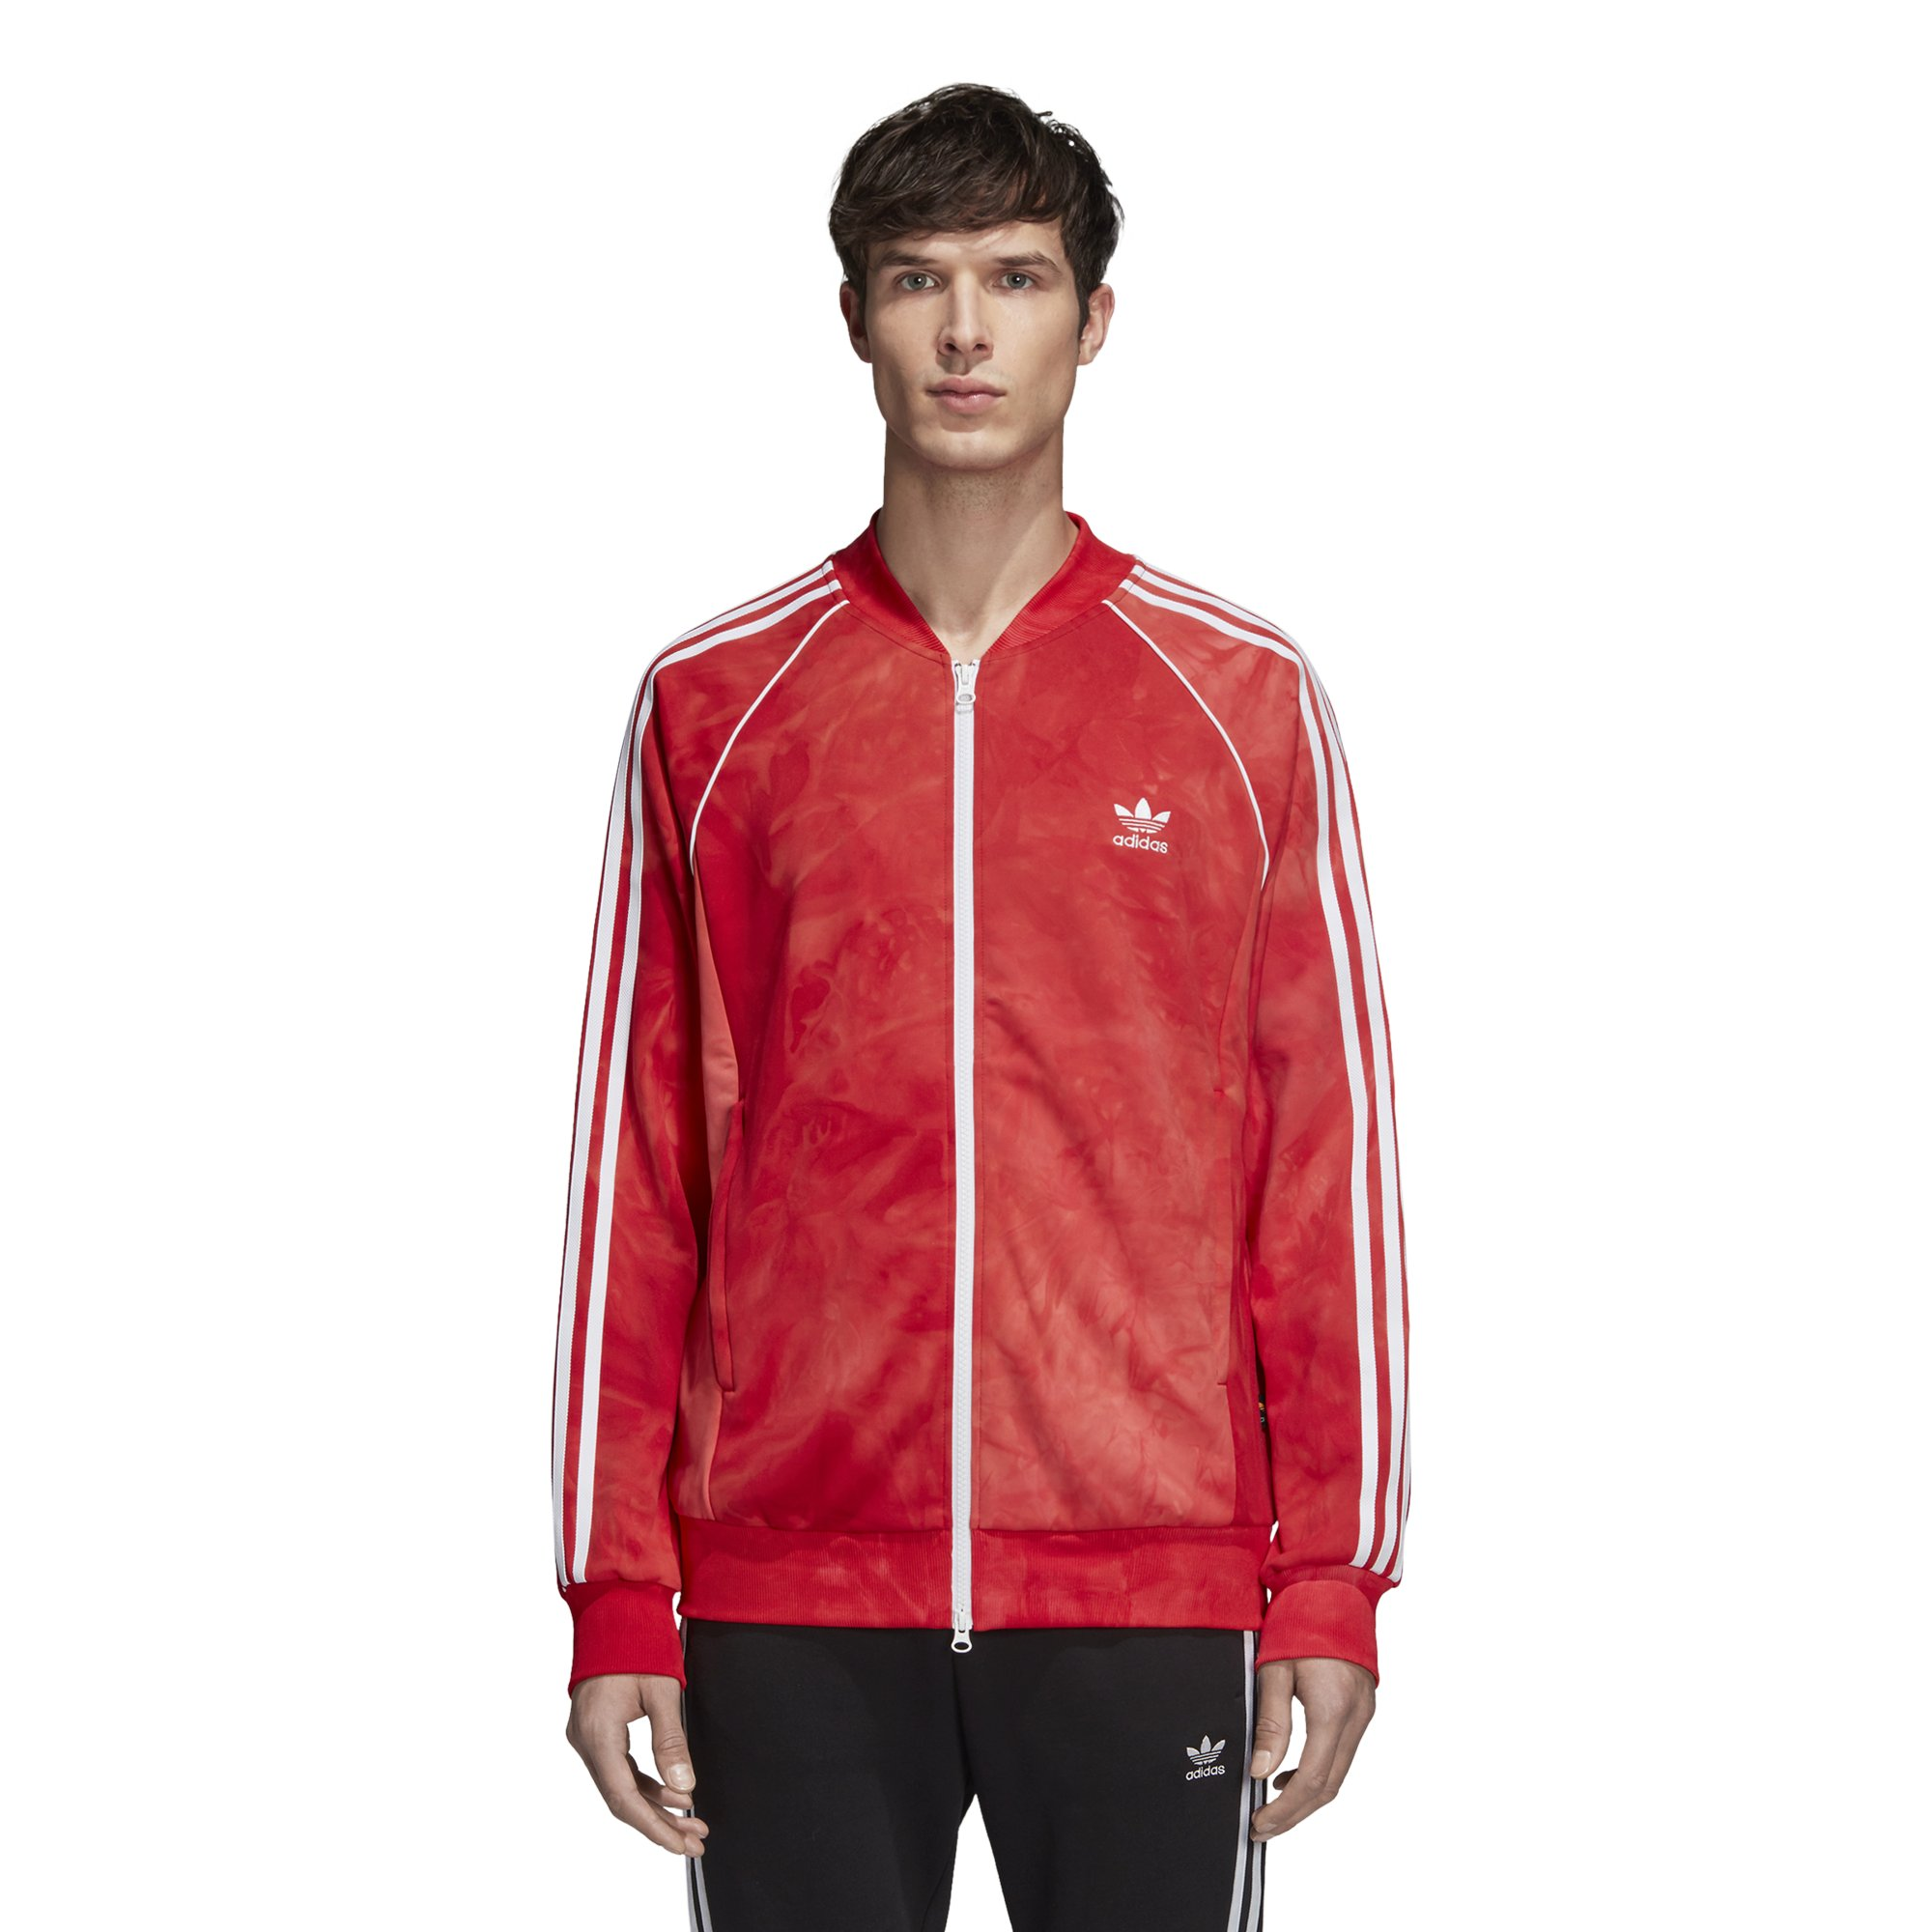 ad1280e638b4fe Bluza Adidas PHARRELL WILLIAMS HU (CW9105) r.L - 7404428051 ...